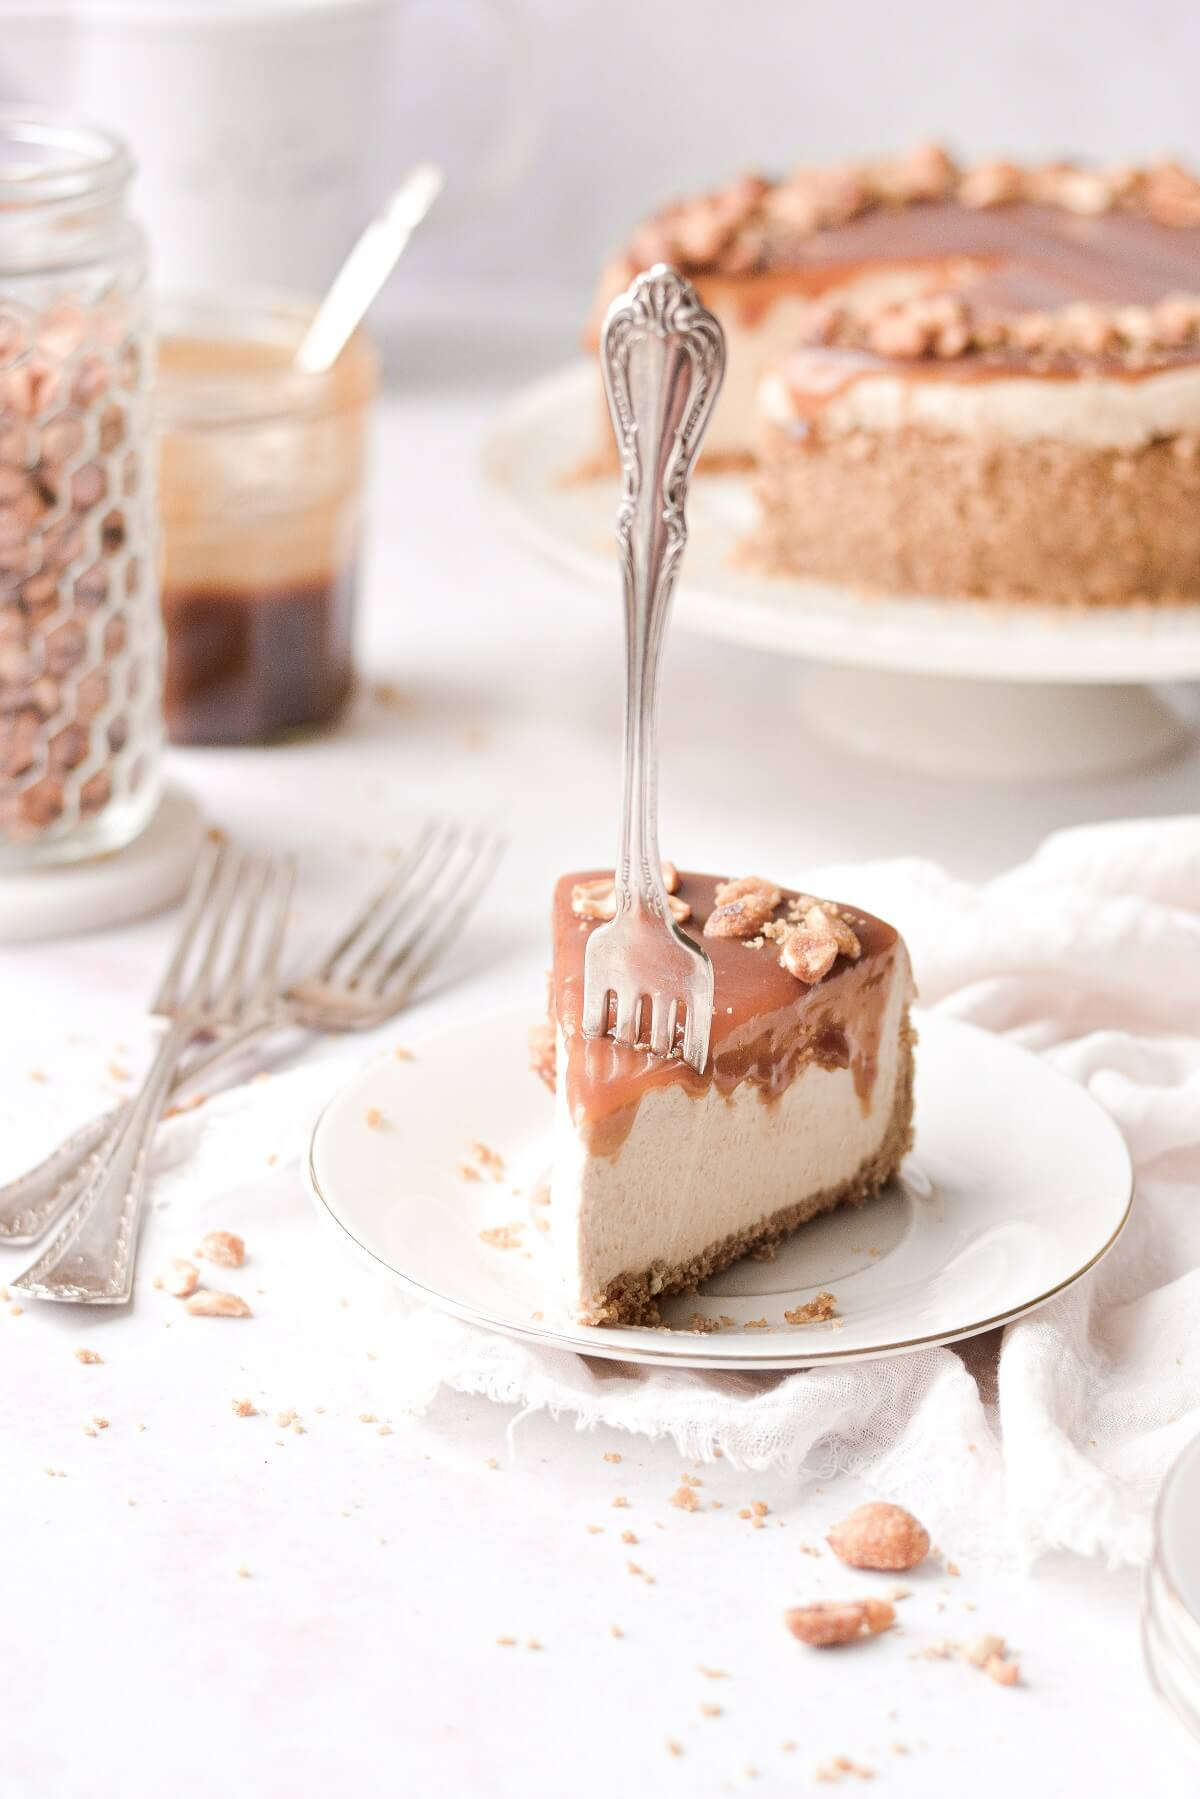 A slice of peanut butter cheesecake with a fork stuck in.